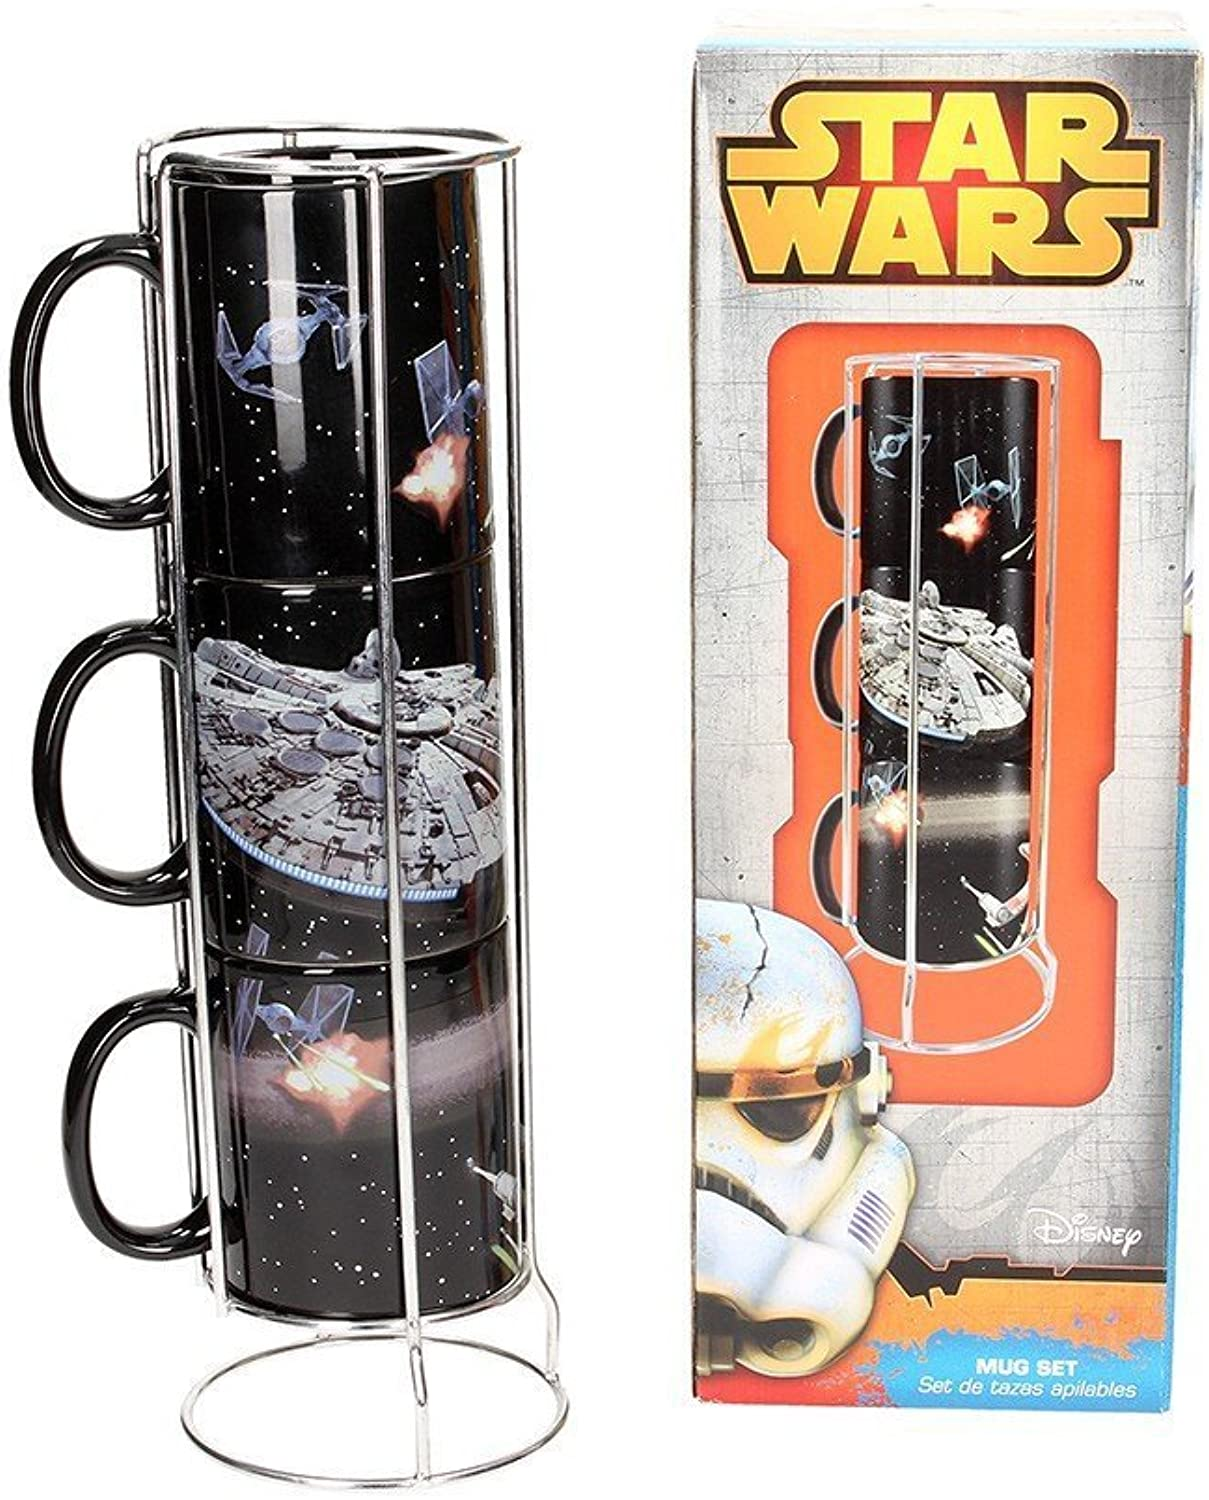 SD Toys  Mugs Star Wars Empilables  Death Star and Millenium Falcon Battle  8436546896401